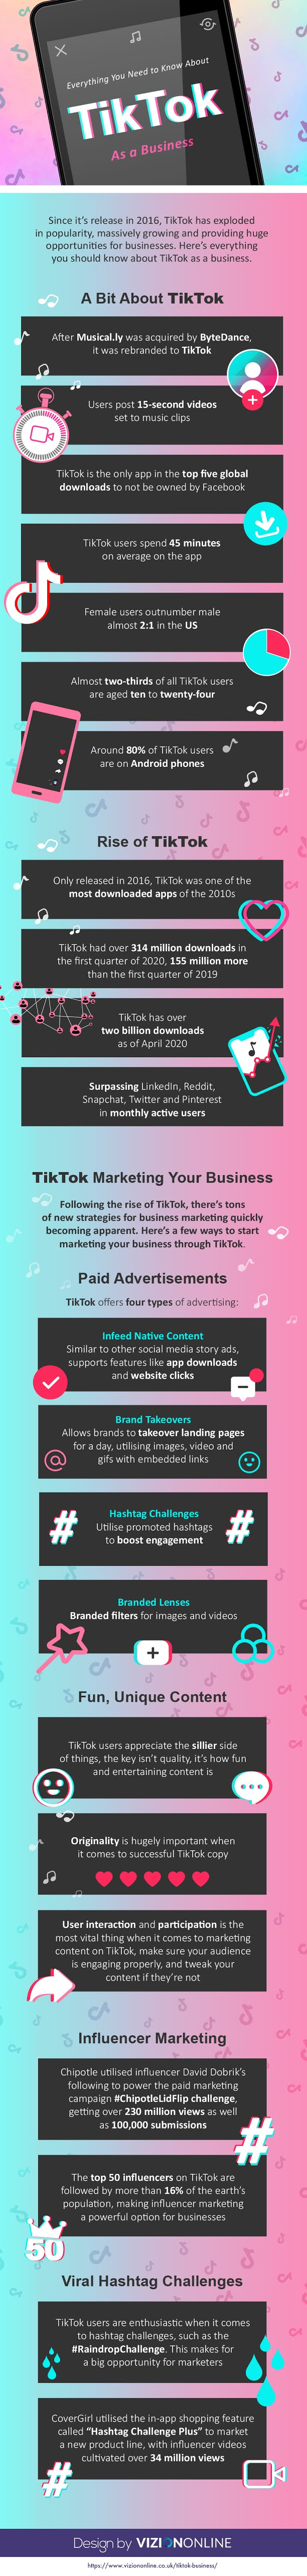 Everything You Need to Know About TikTok as a Business #infographic